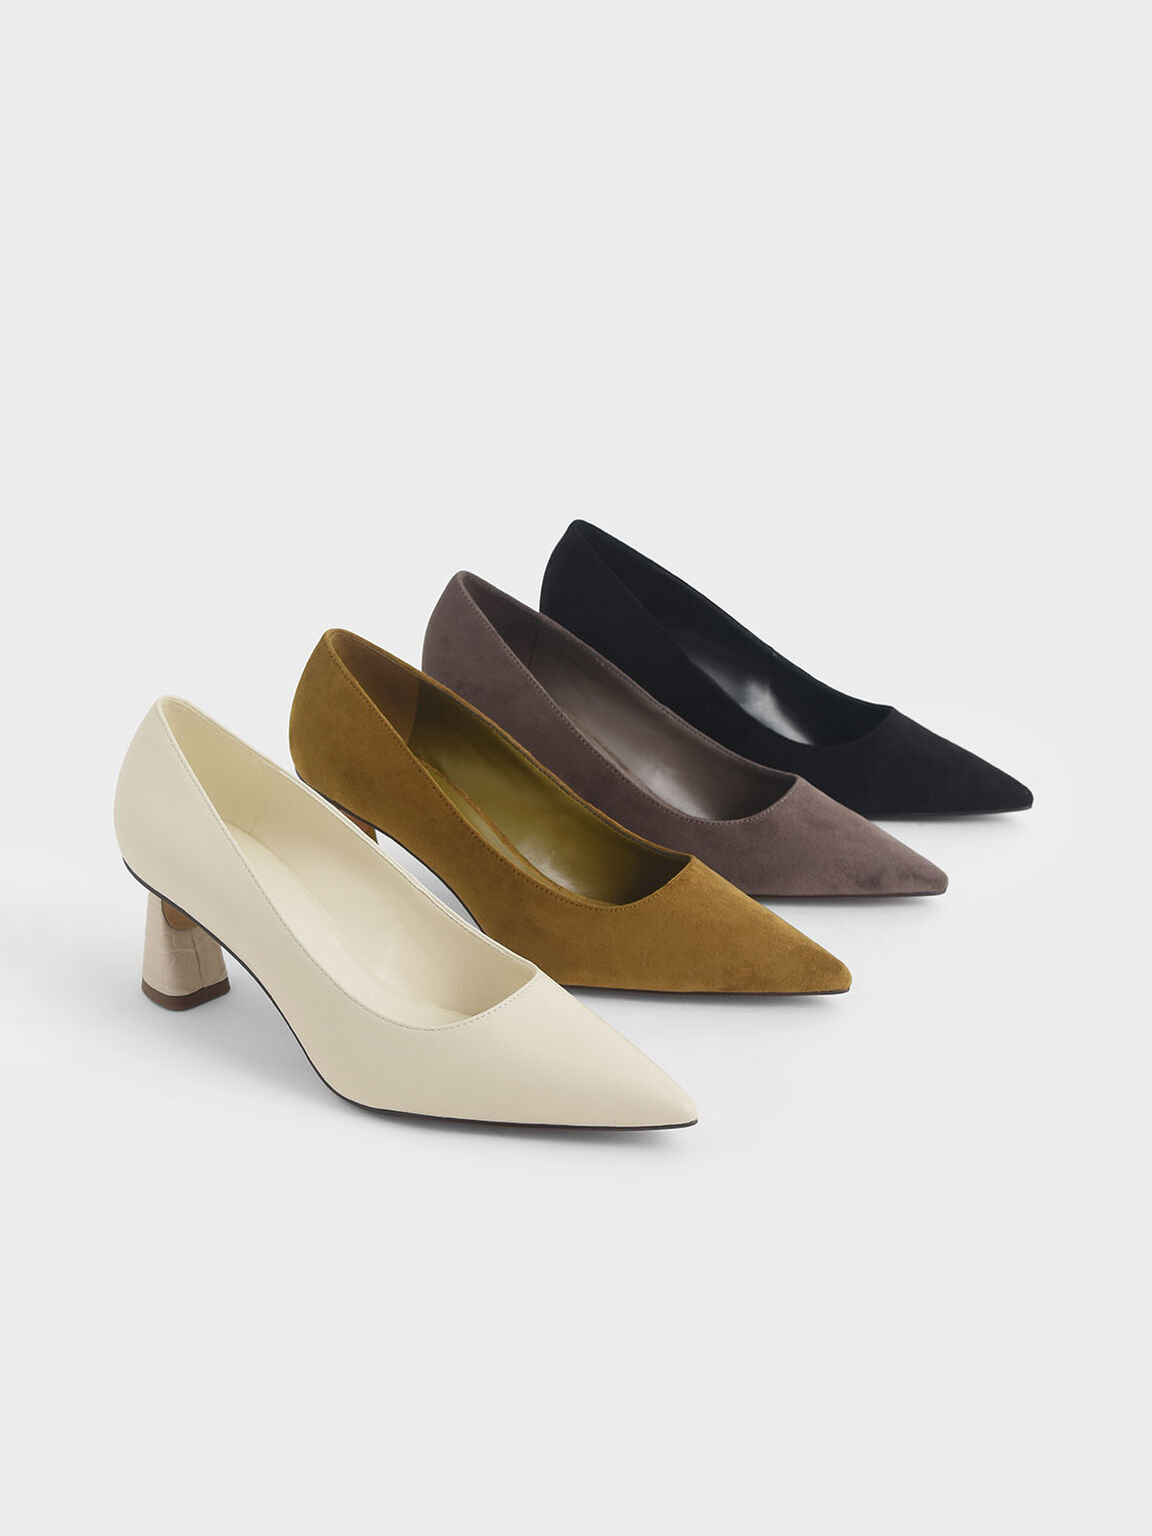 Textured Sculptural Heel Pumps, Taupe, hi-res